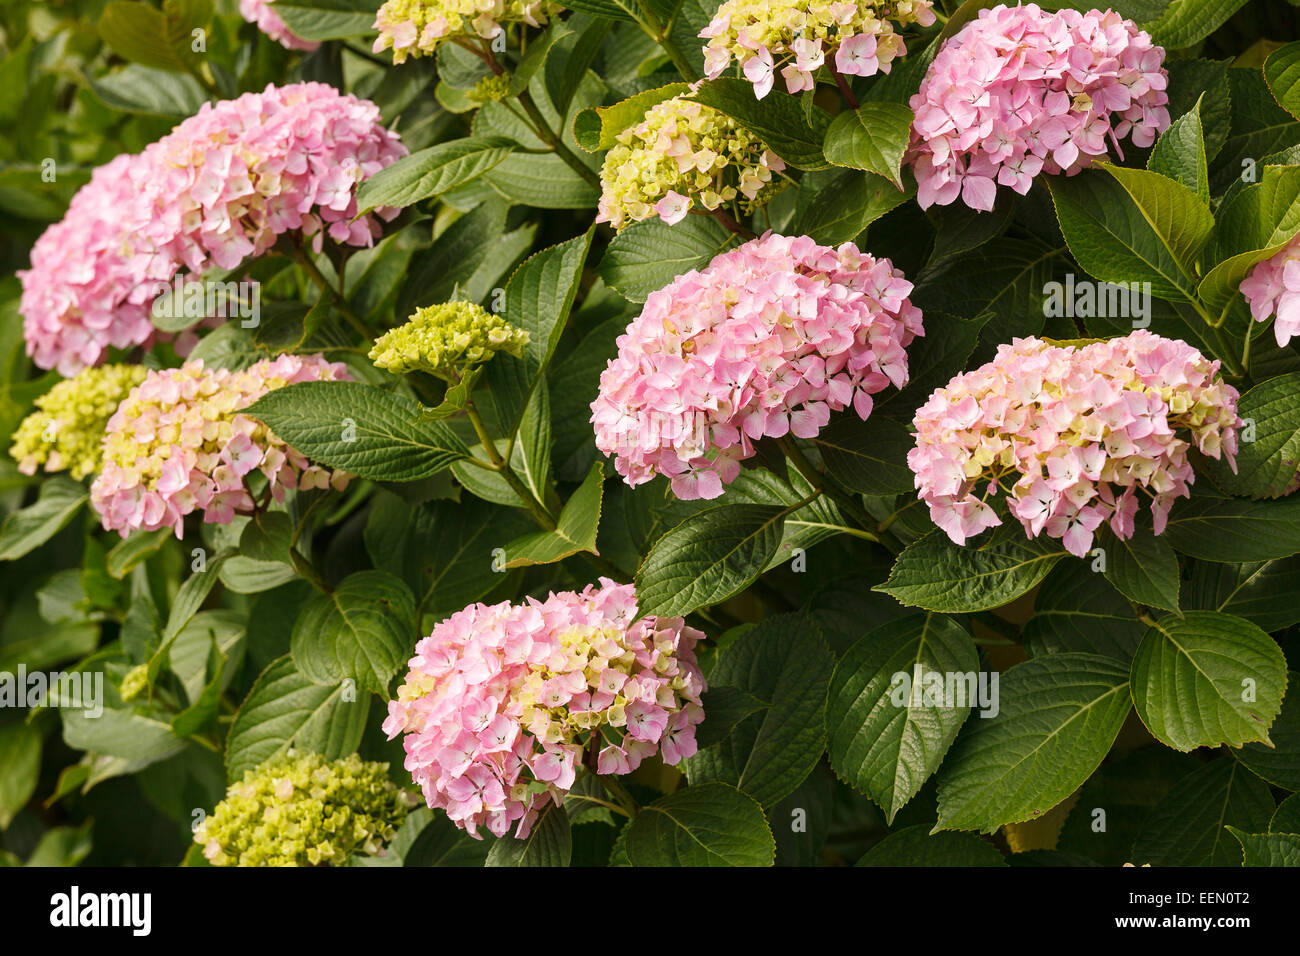 Hydrangea macrophylla. Donostia. San Sebastian. Euskadi. Vasque country. Spain. Europe - Stock Image